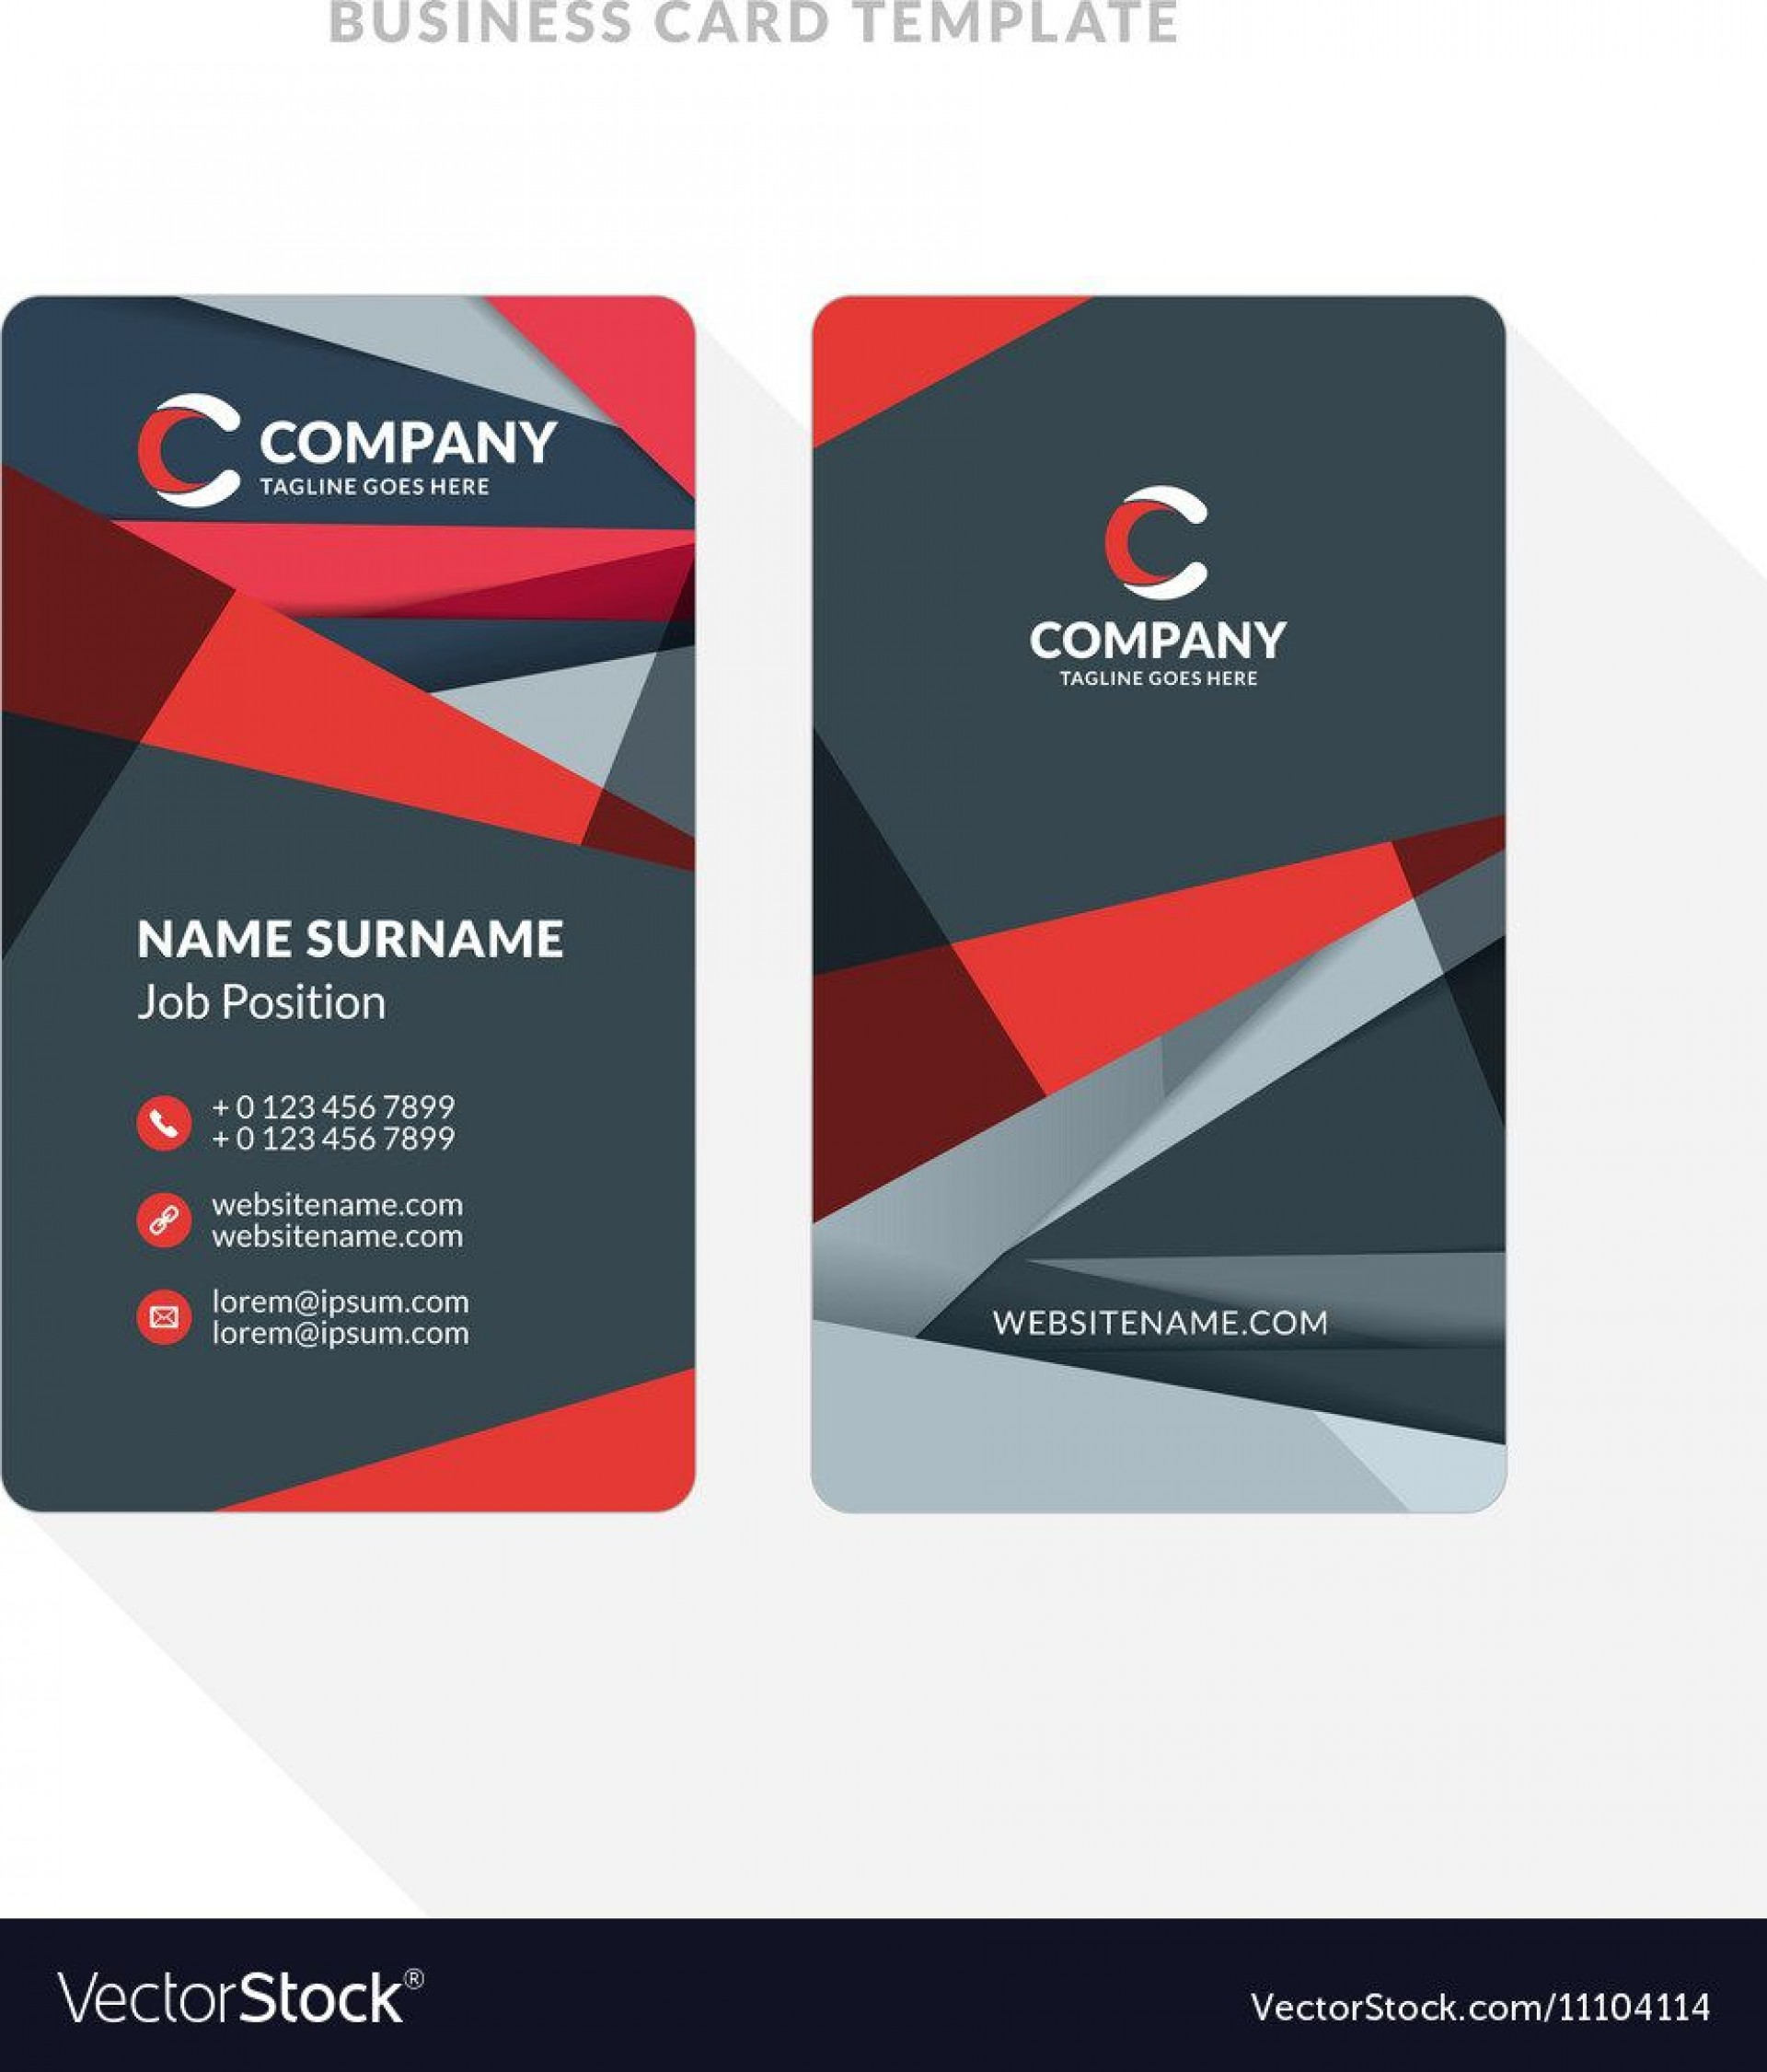 010 Excellent Double Sided Busines Card Template Sample  Templates Word Free Two Microsoft1920